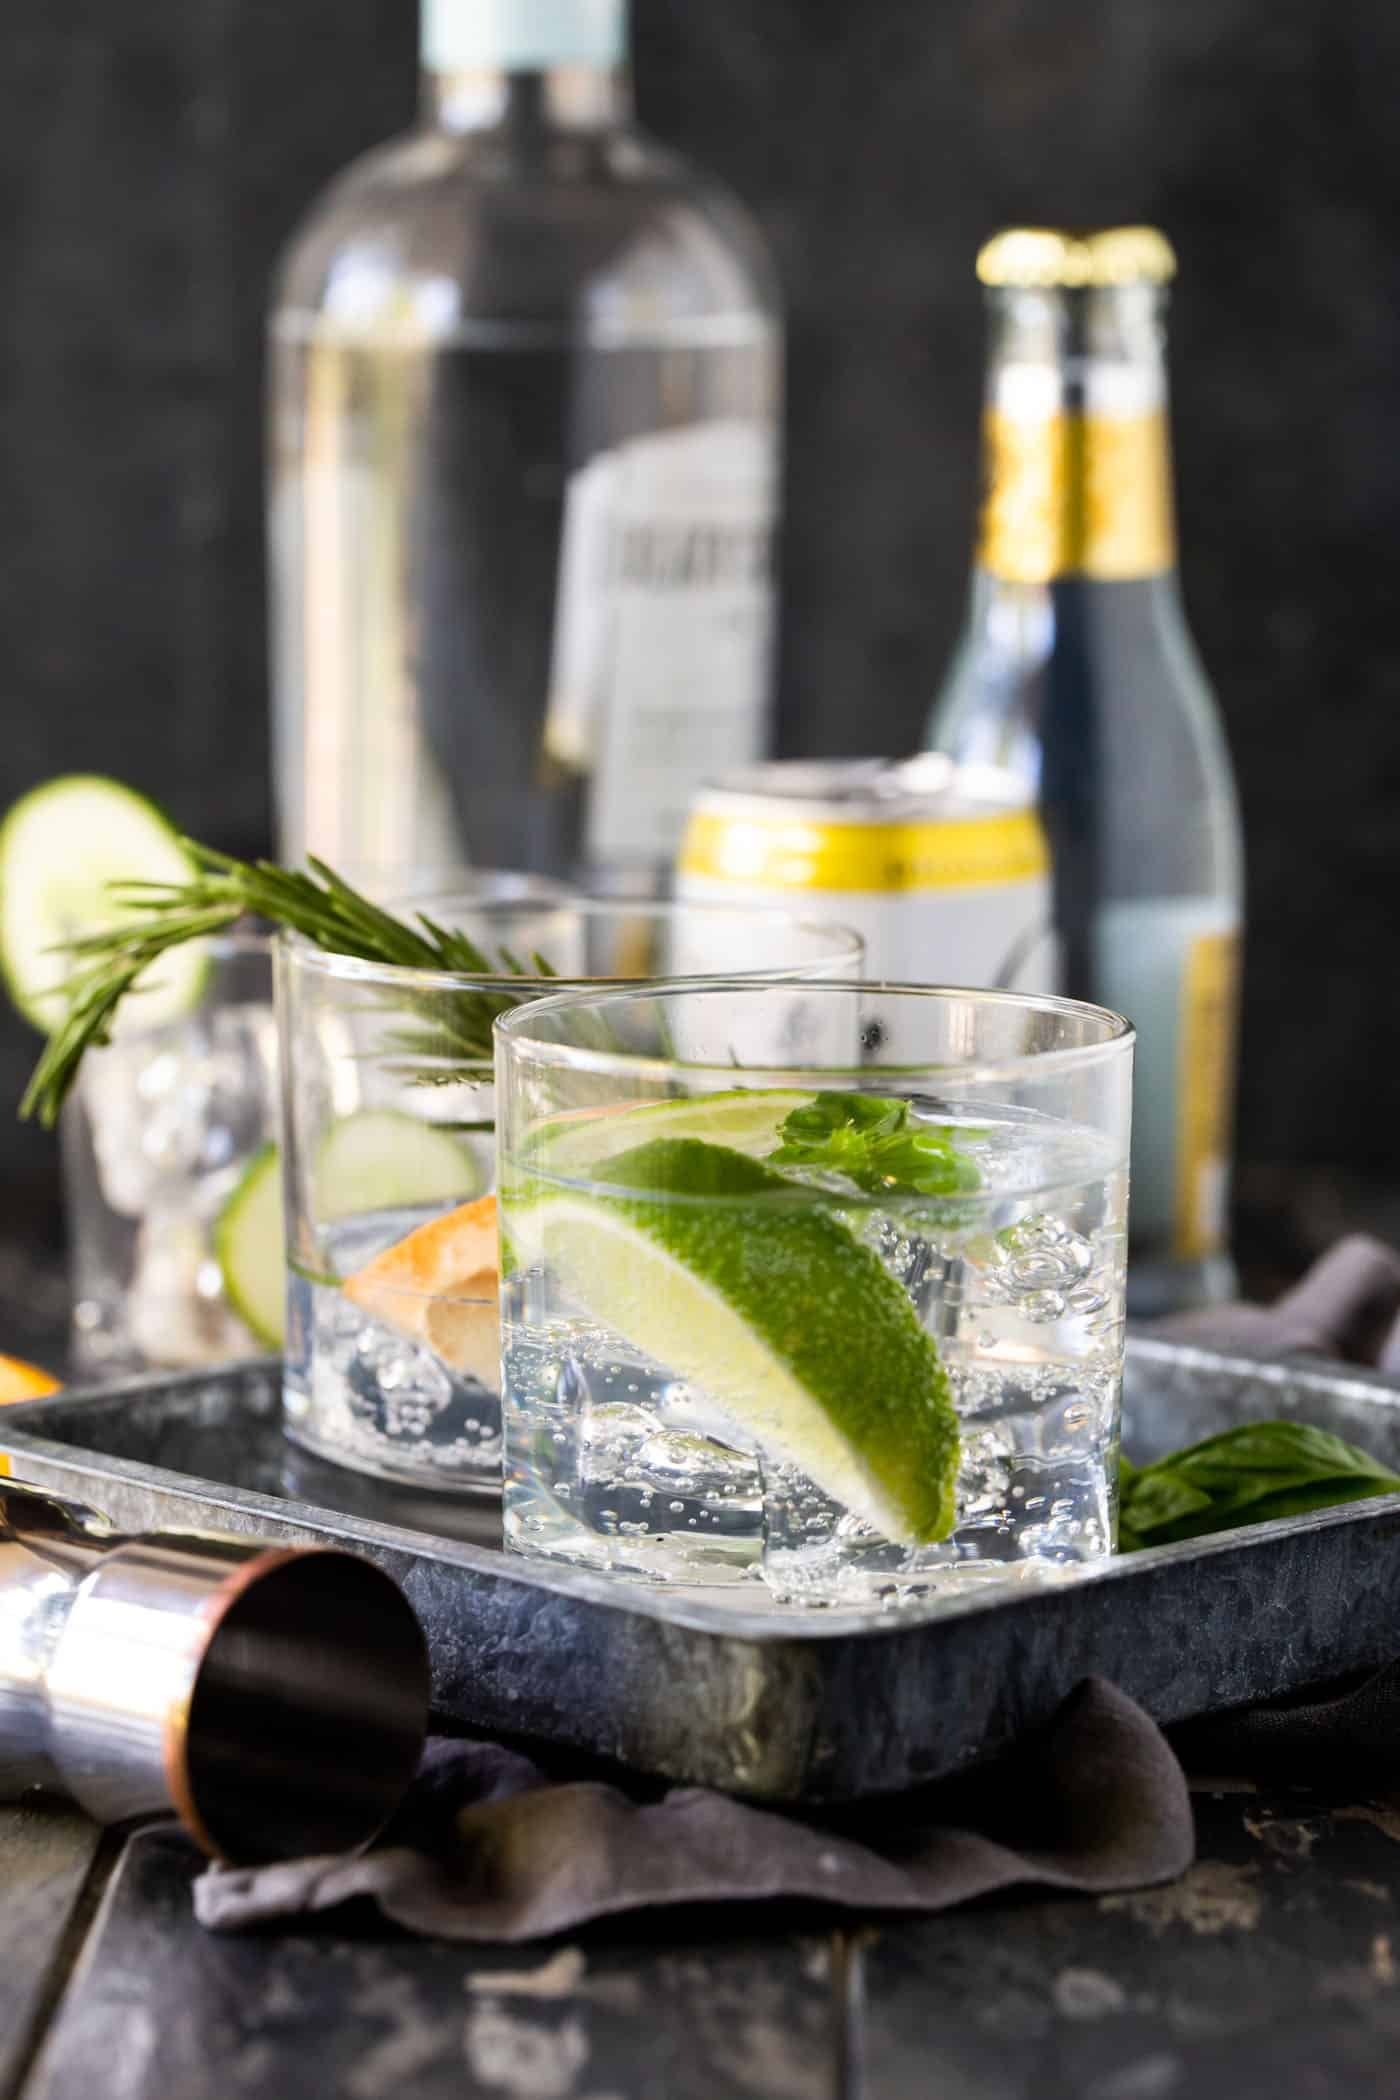 Set up a DIY Gin & Tonic Bar and let your guests make